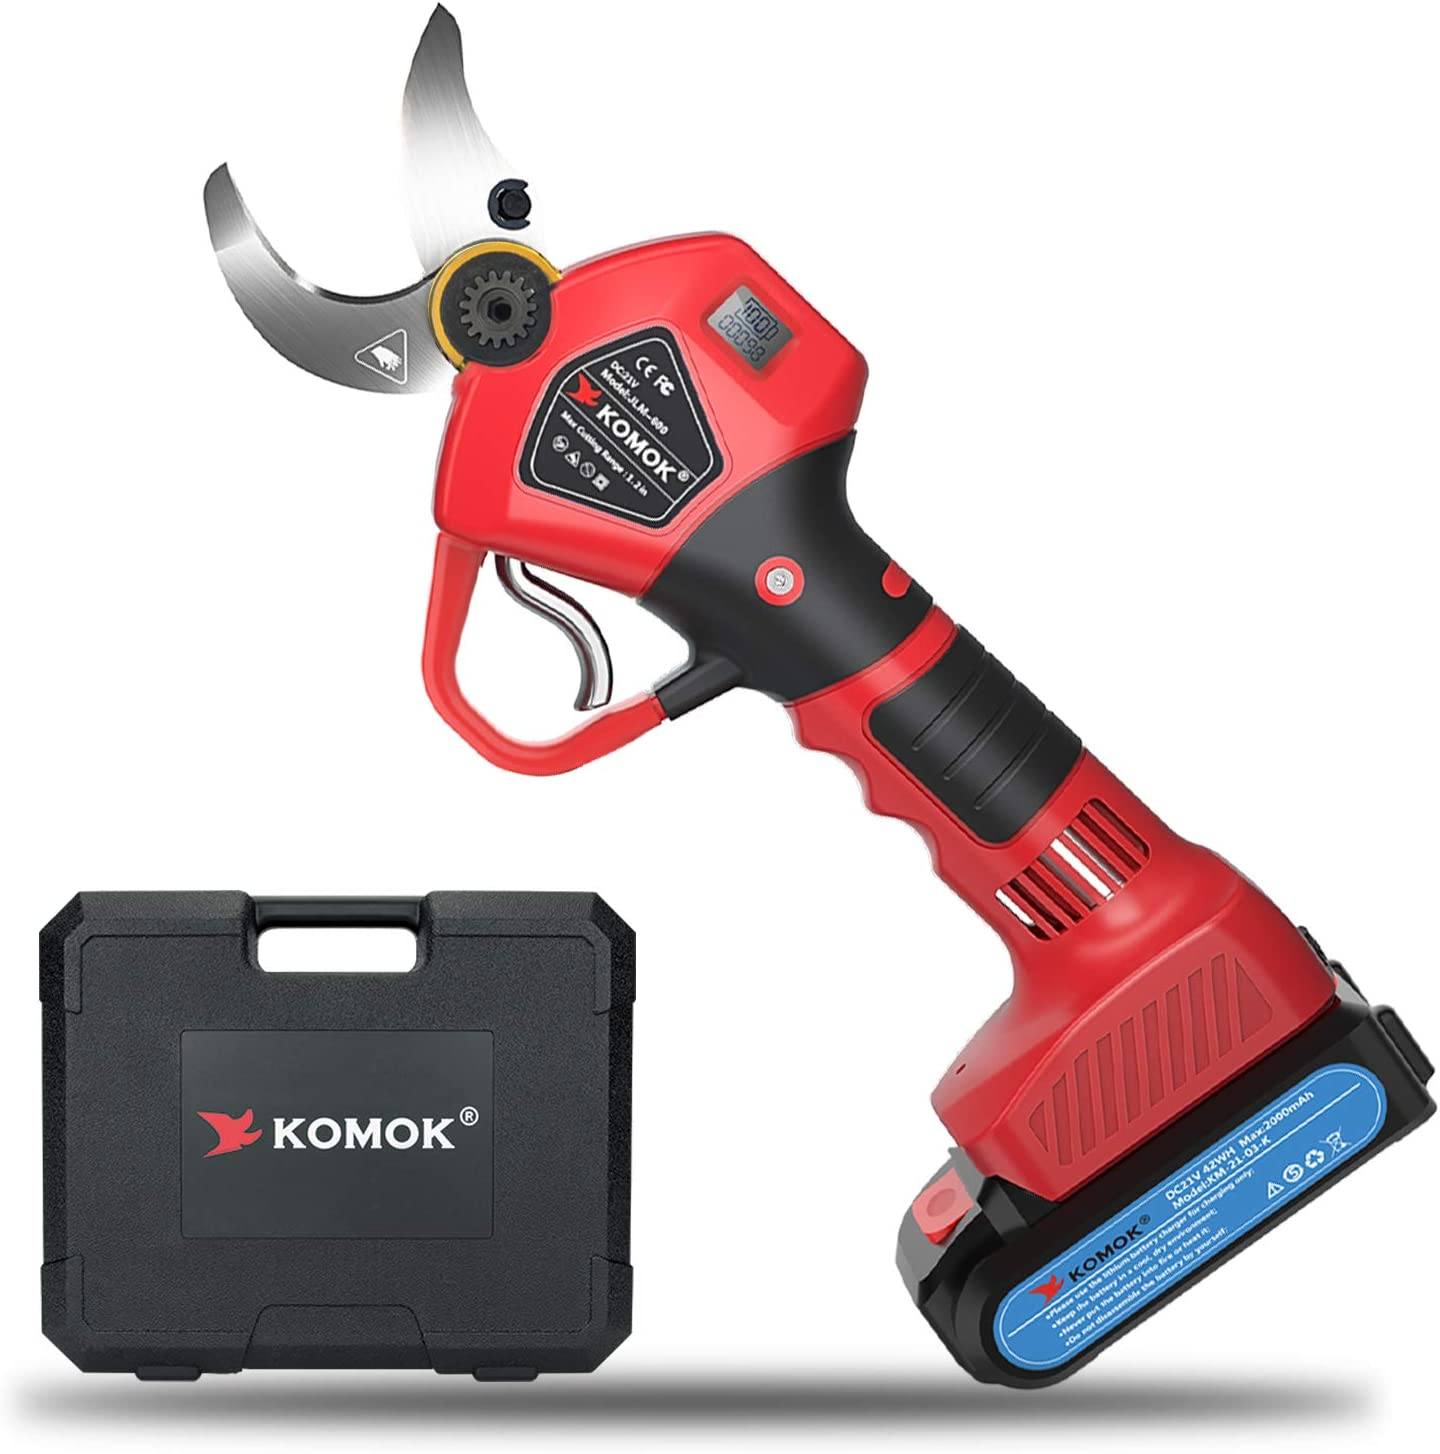 KOMOK Professional Sale price Cordless Electric Max 60% OFF Pruning Shears with Digital